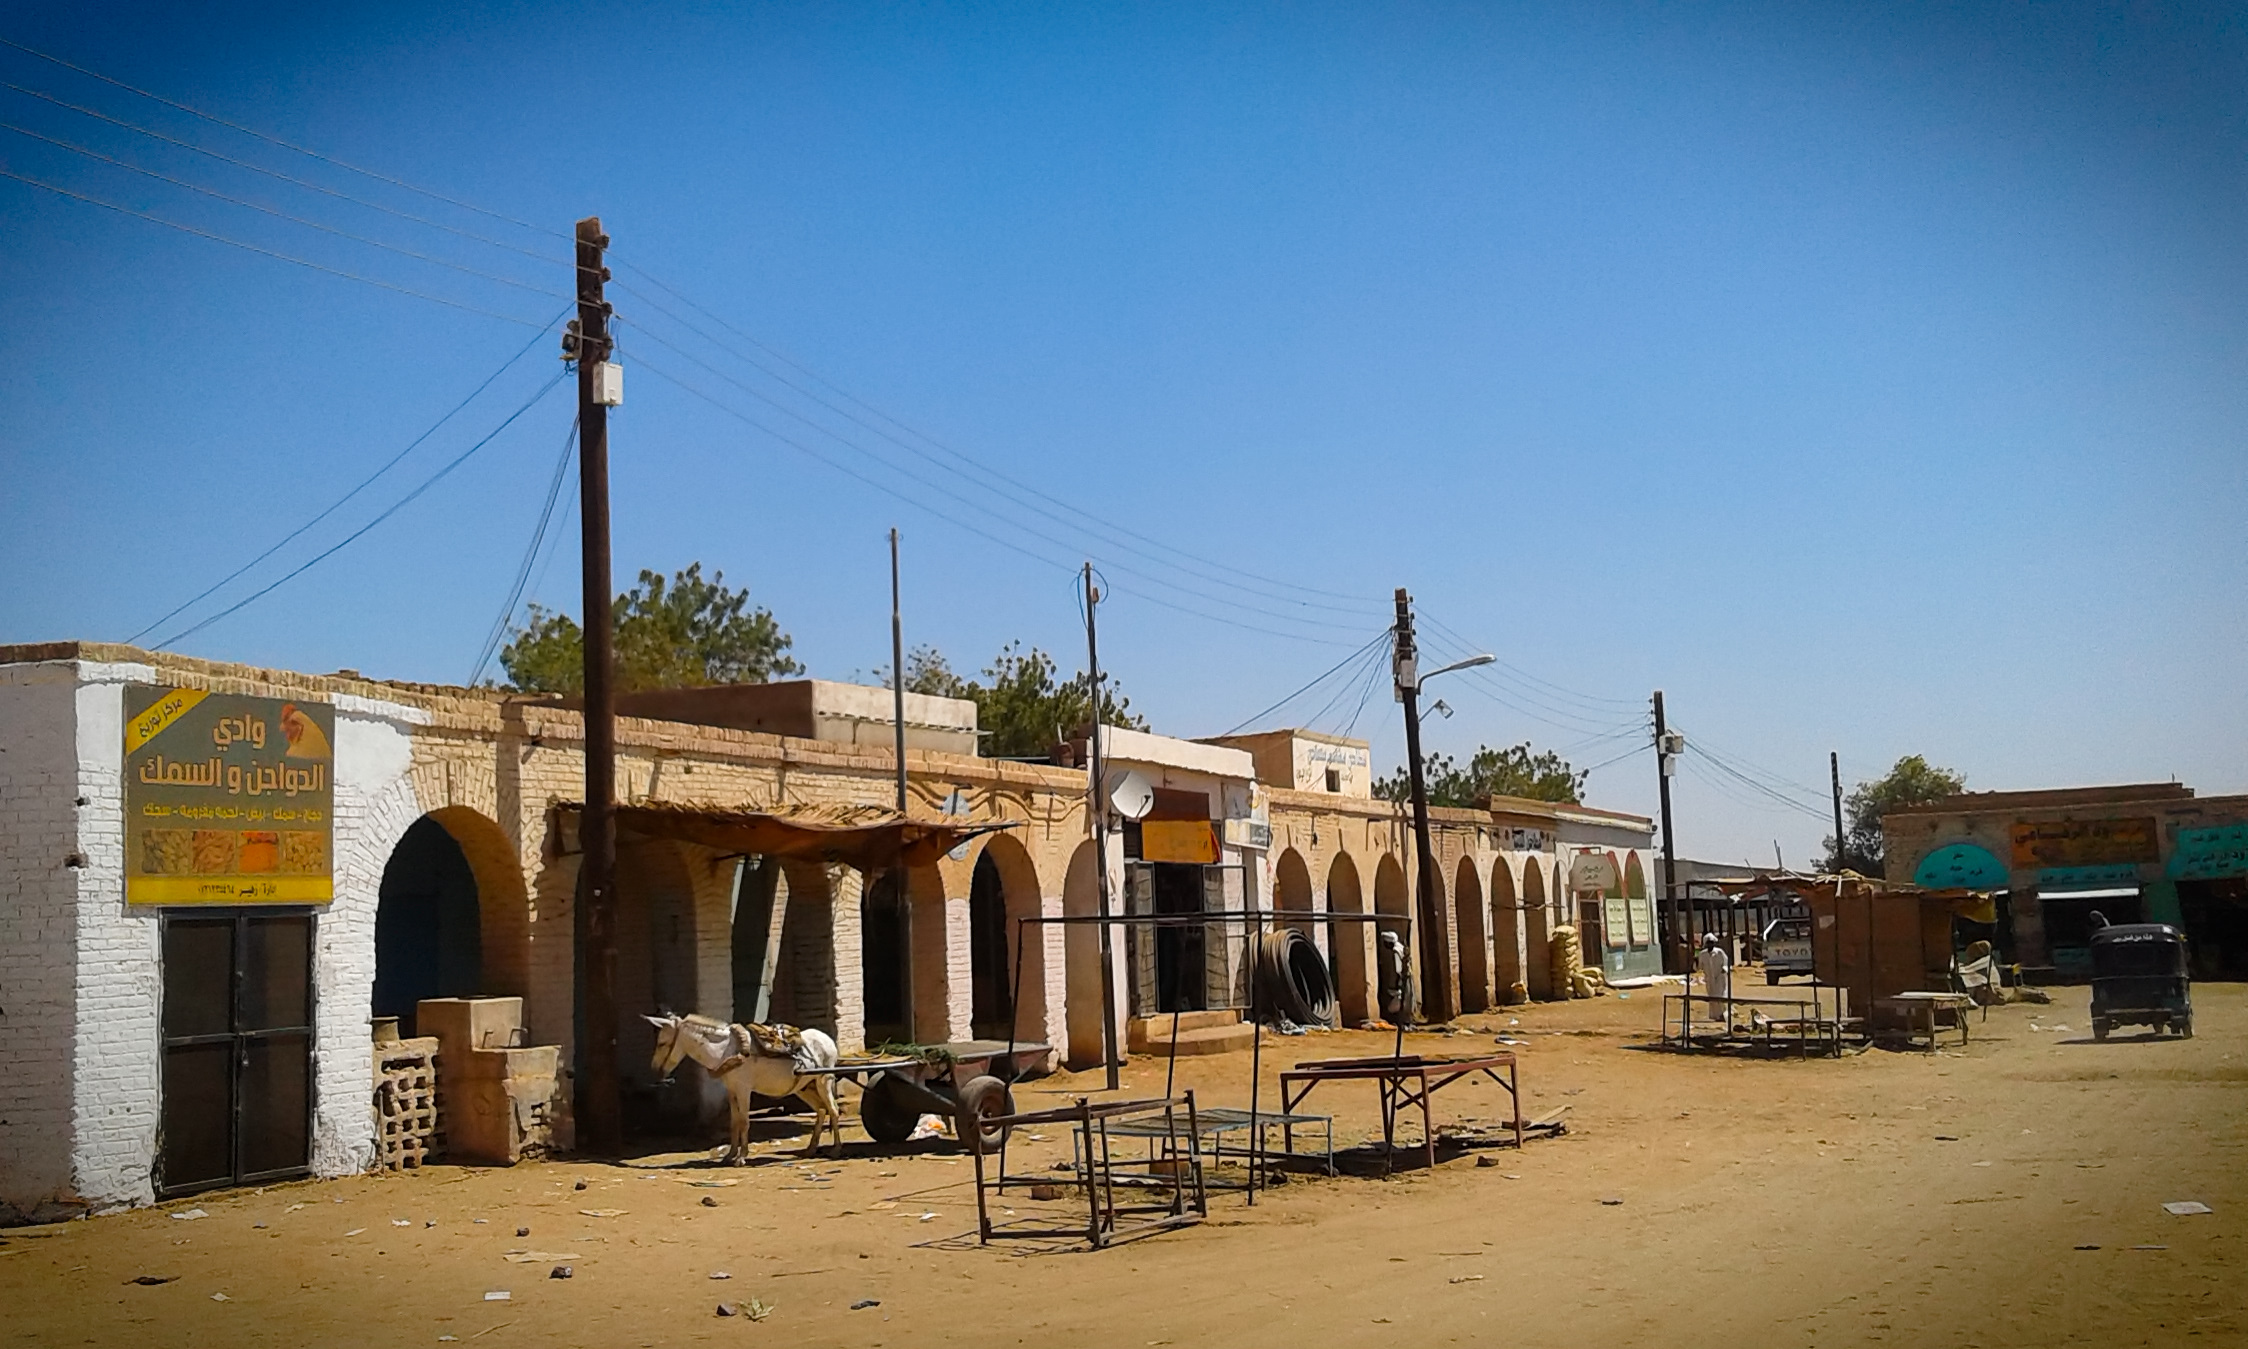 There is something beautiful about the simplicity of rural Sudanese towns...